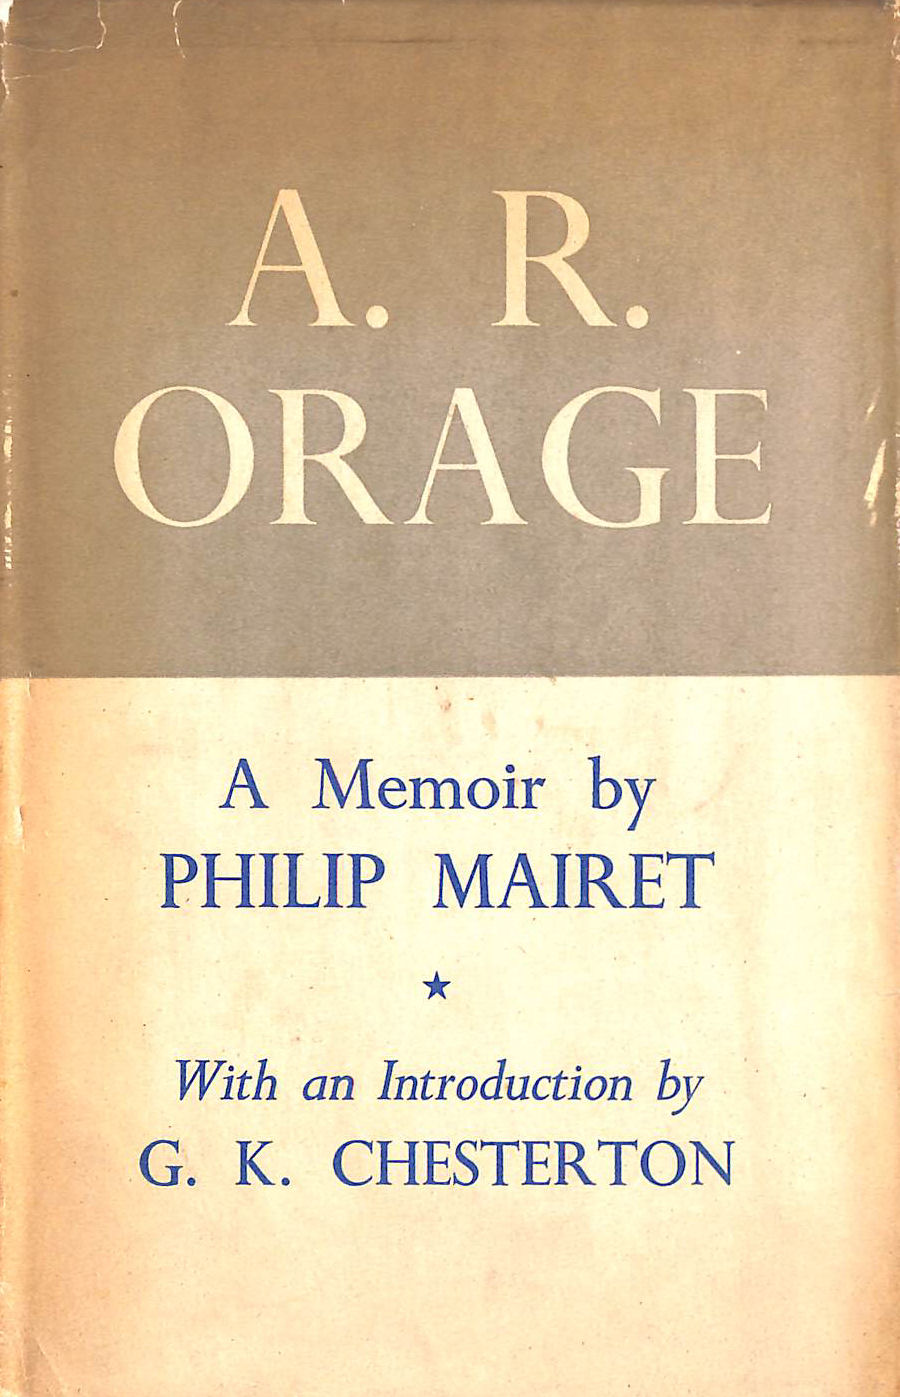 Image for A.R. Orage. A Memoir By Philip Mairet. With An Introduction By G.K. Chesterton.